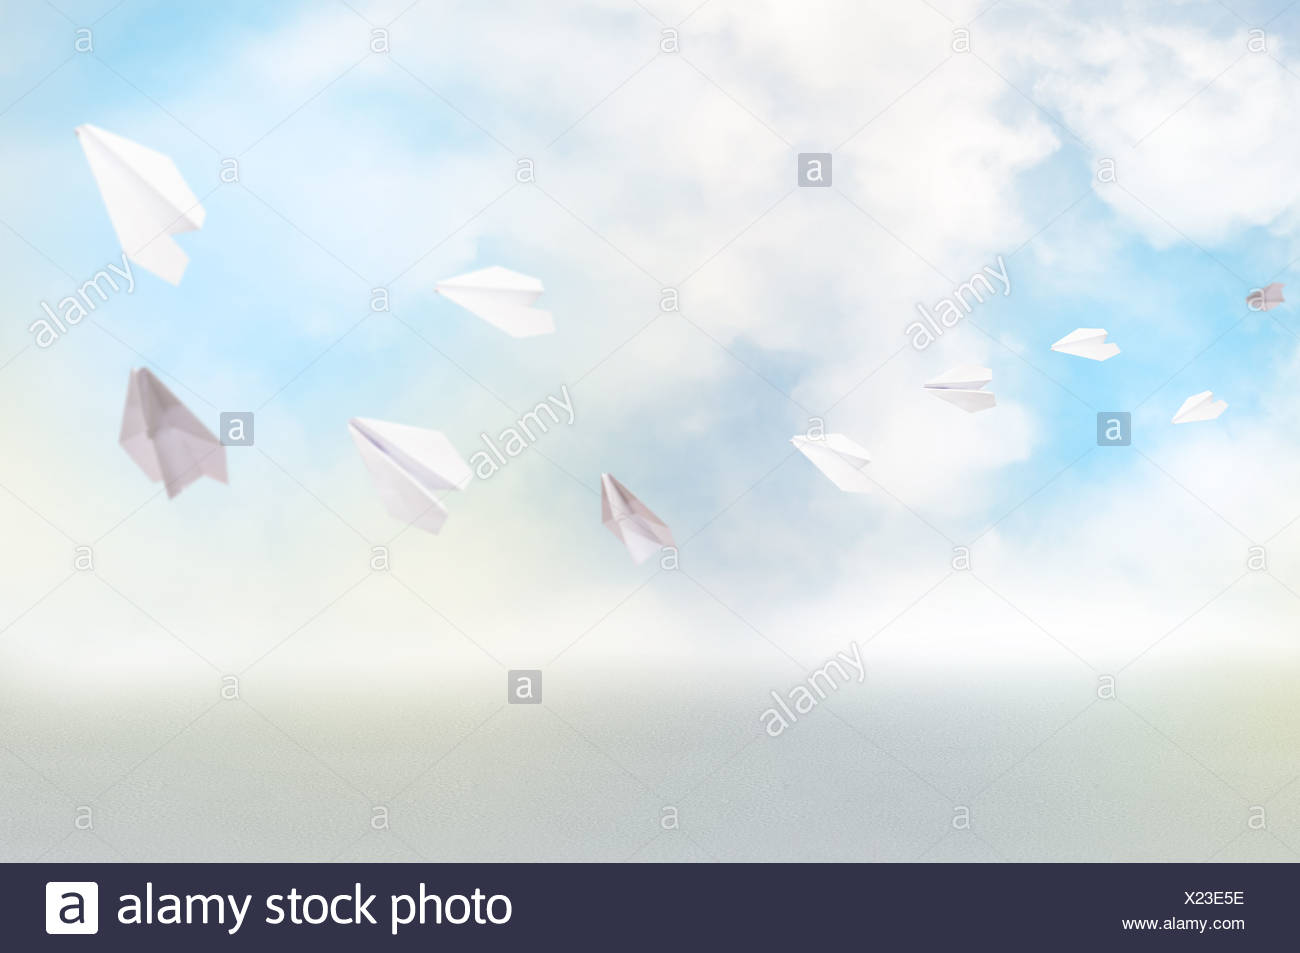 Paper airplanes - Stock Image